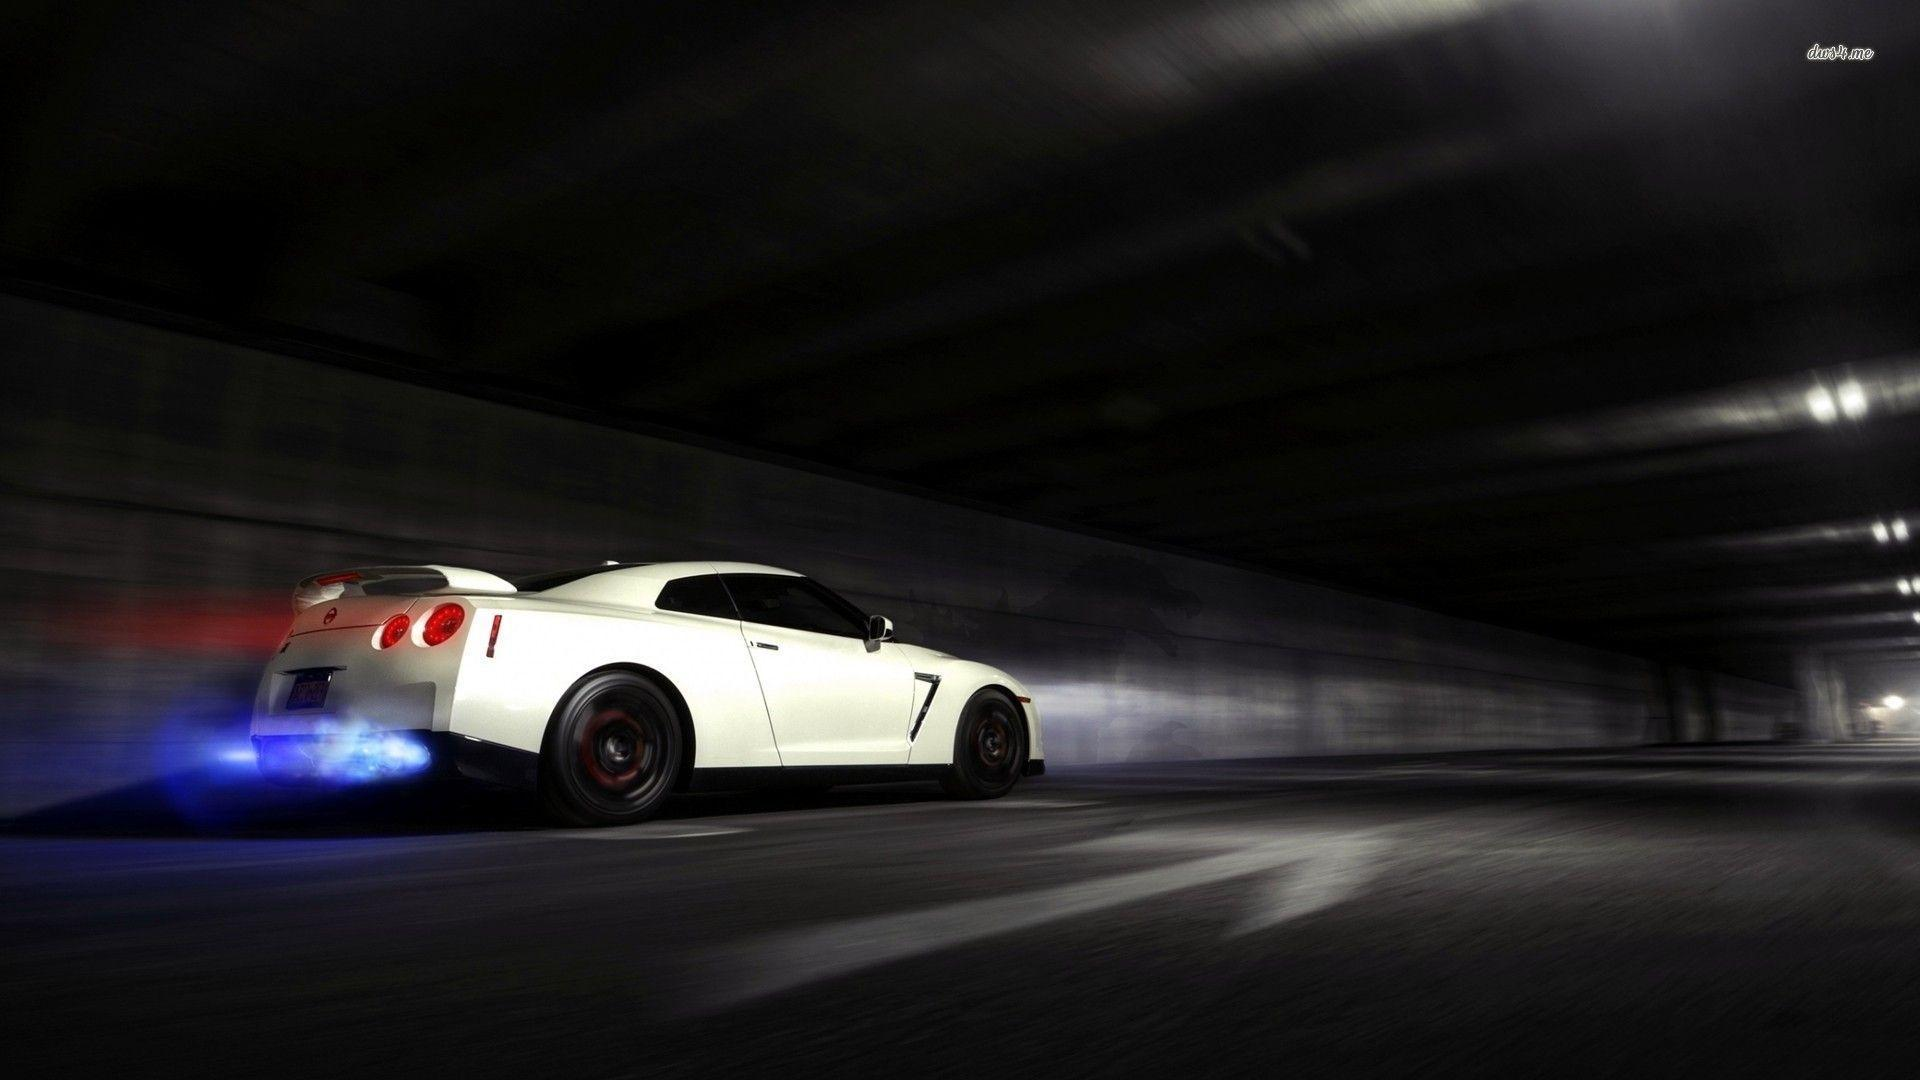 gtr 35 hd wallpaper iphone - photo #10